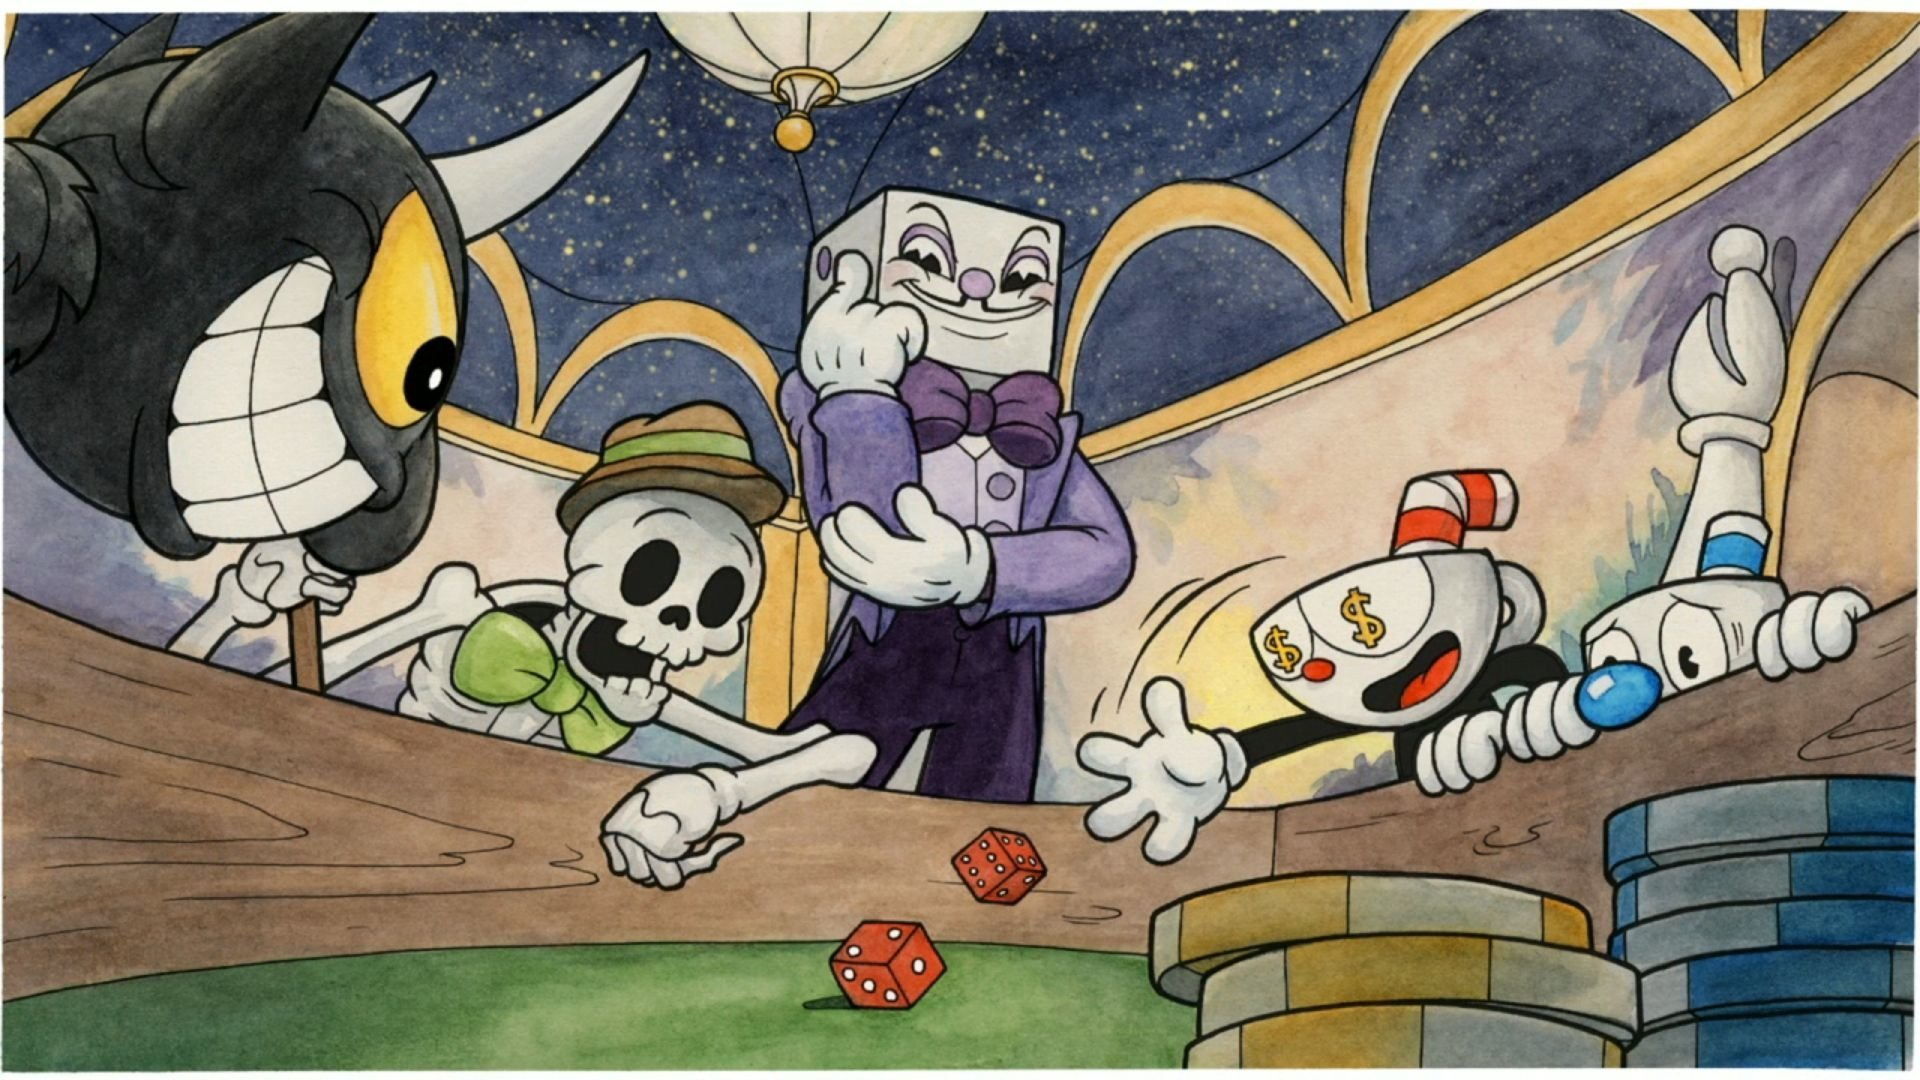 Video Game - Cuphead  The Devil (Cuphead) Mugman (Cuphead) King Dice (Cuphead) Wallpaper